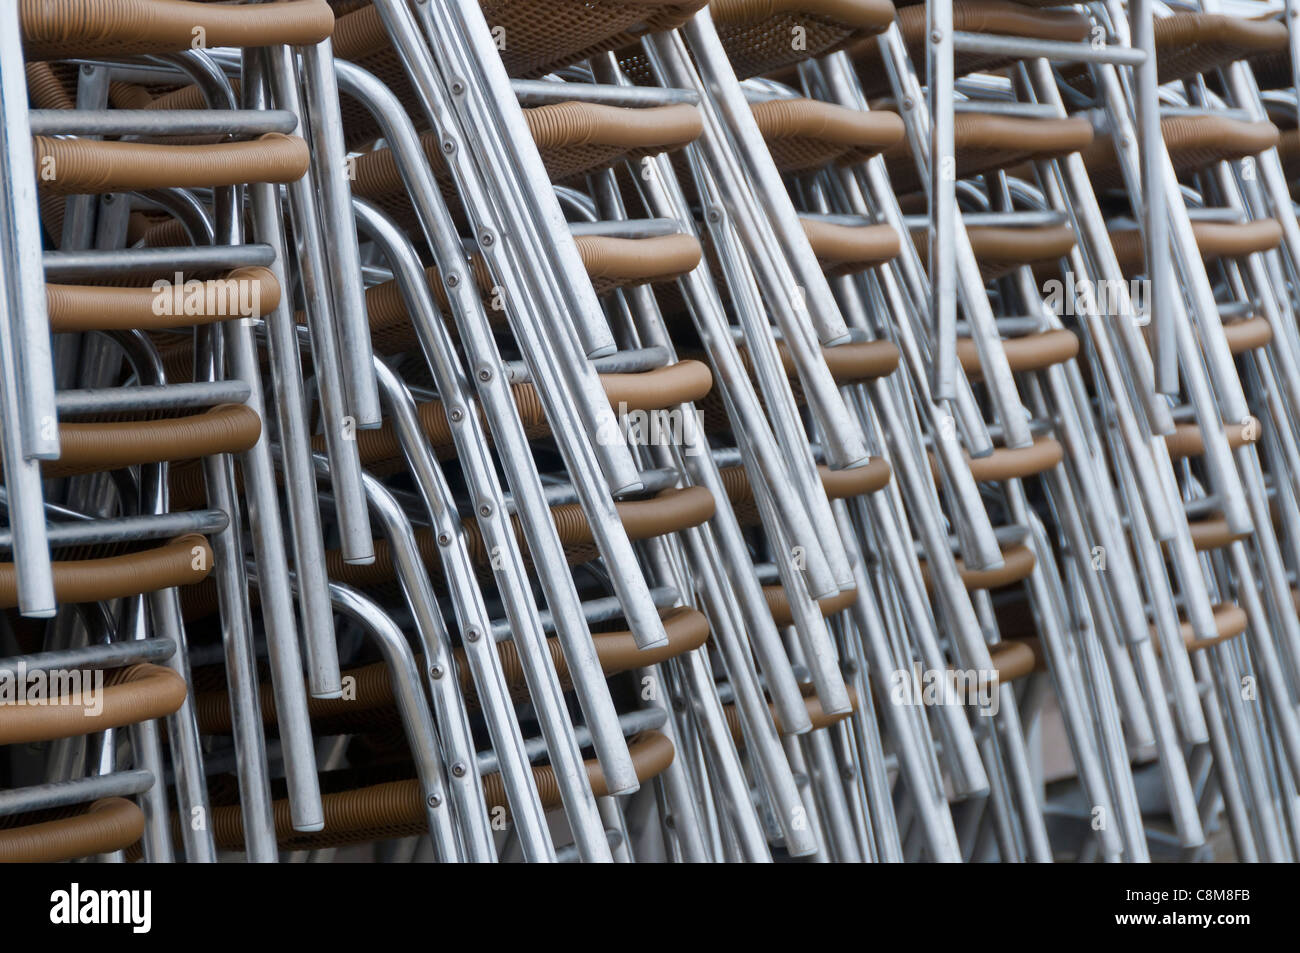 Aluminium chairs stacked outside a cafe. - Stock Image